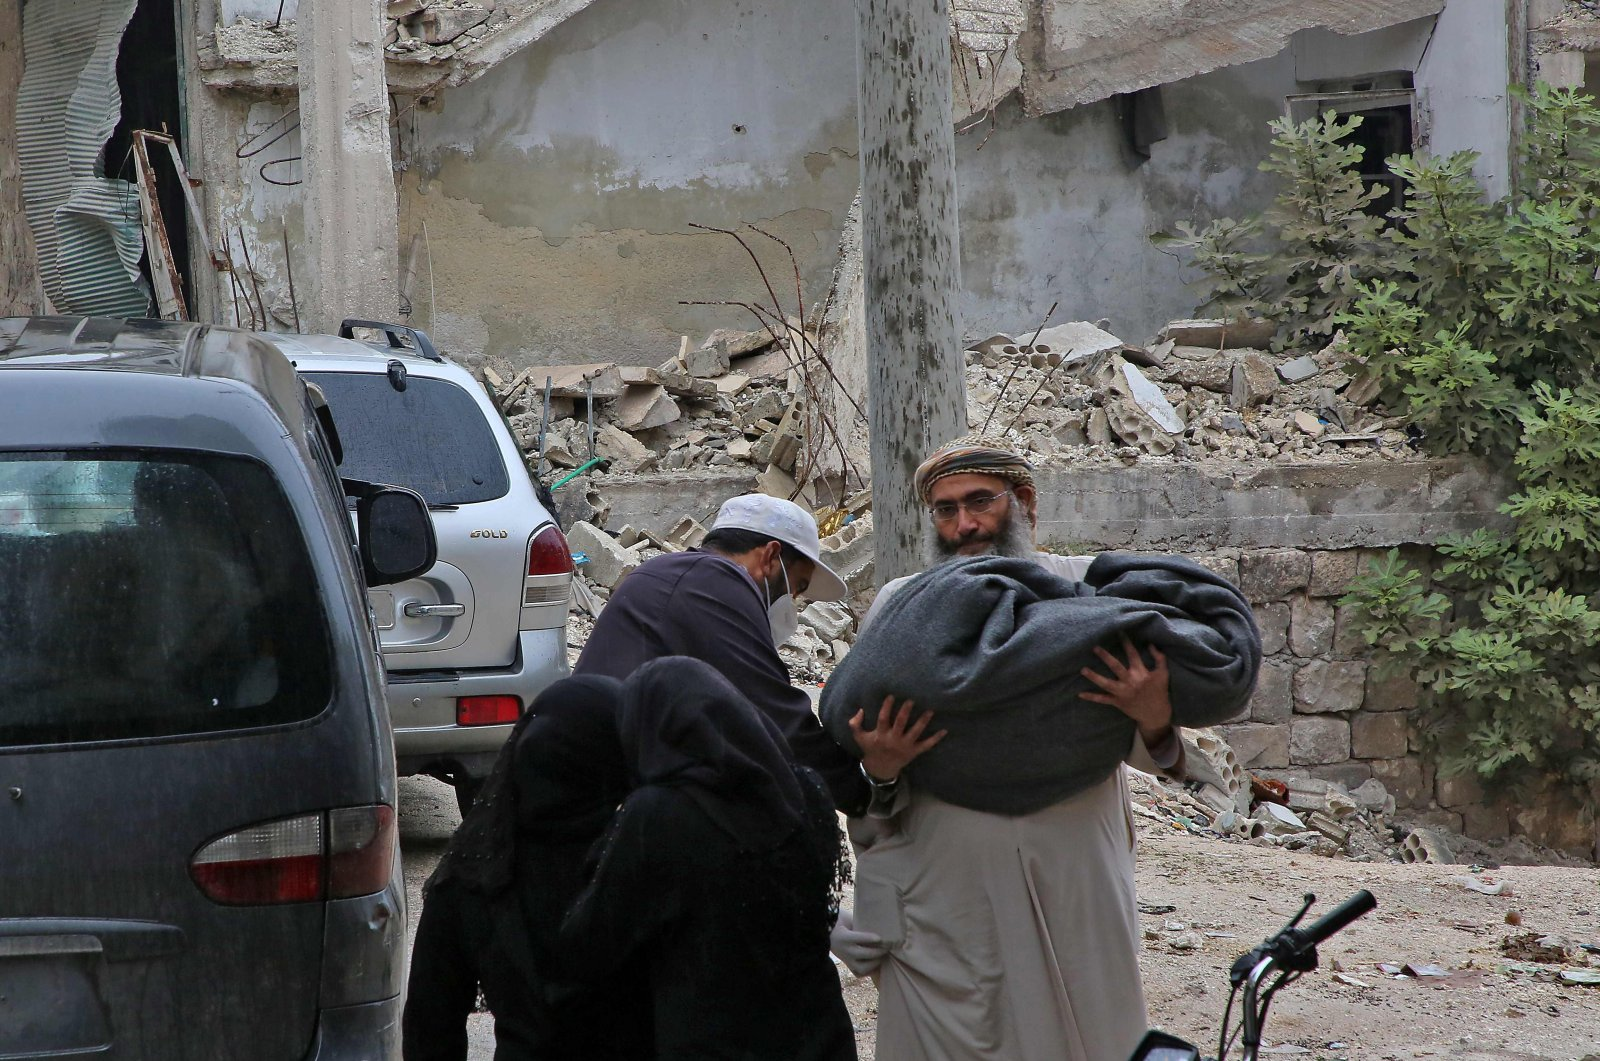 A Syrian man carries the body of a child killed in early morning shelling on the town of Ariha by government forces in the opposition-held area in northwestern Syria early on Nov. 4, 2020. (AFP Photo)